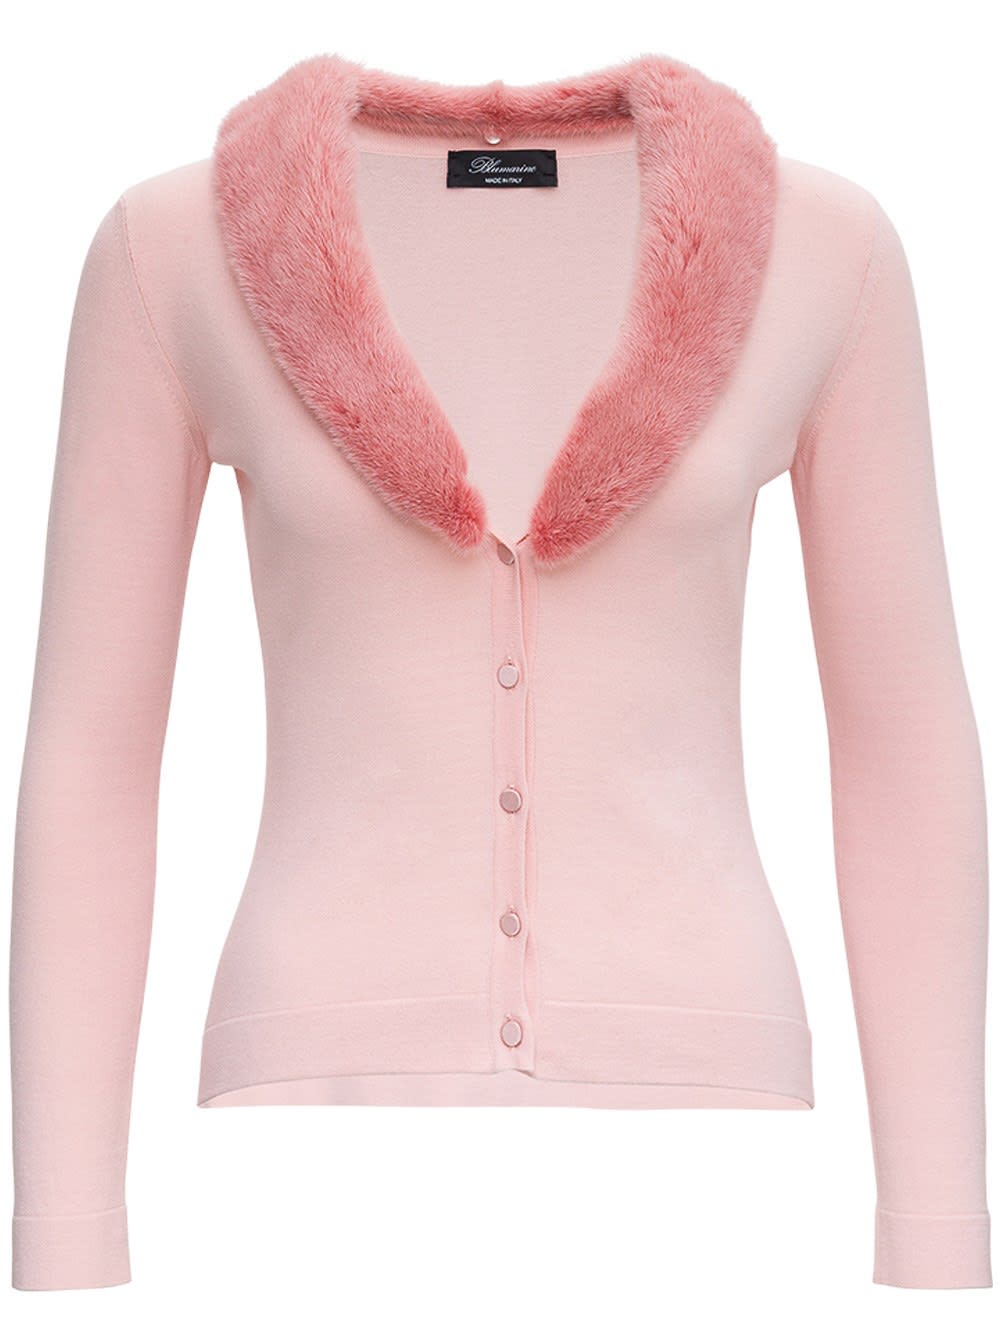 Blumarine PINK CARDIGAN WITH FUR COLLAR